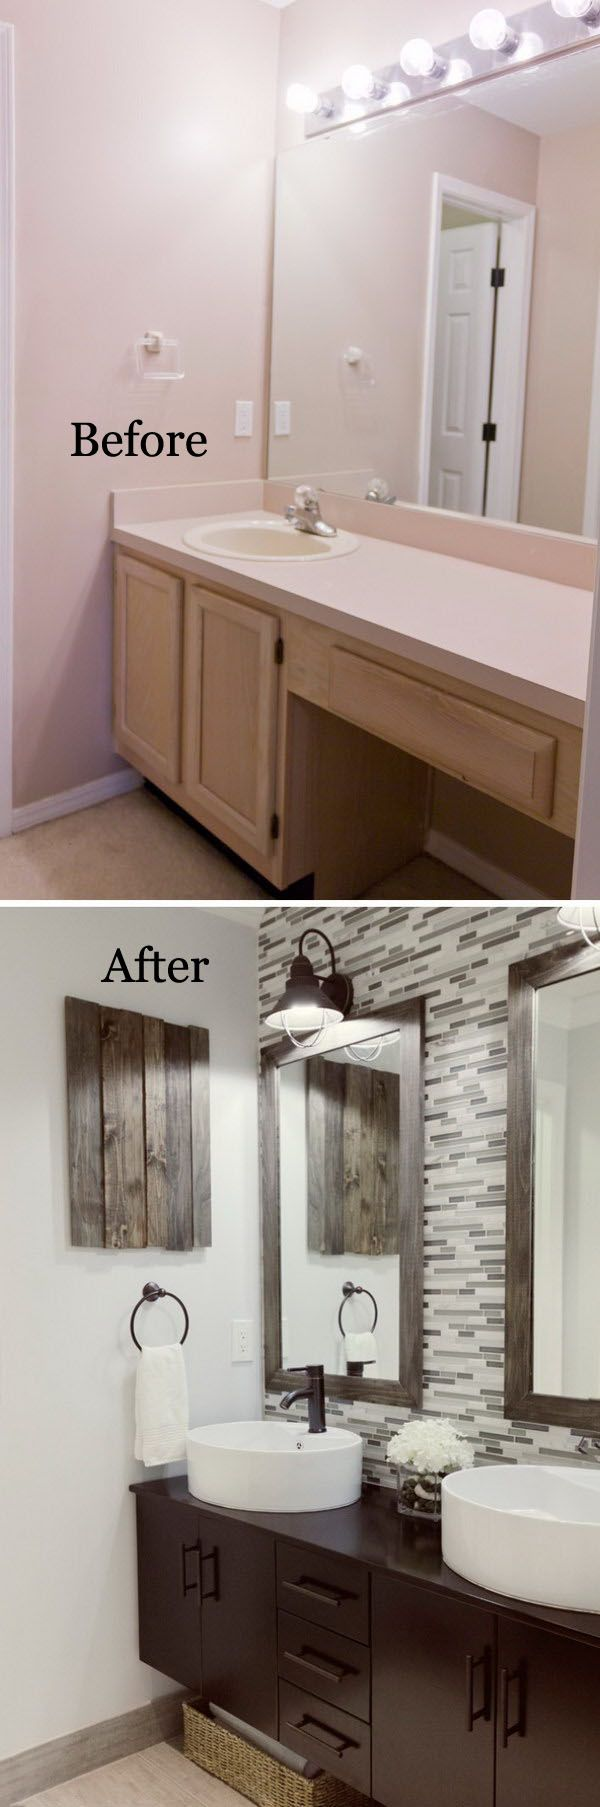 Bathroom Remodeling Ideas Pinterest top 25+ best bathroom renovations ideas on pinterest | bathroom